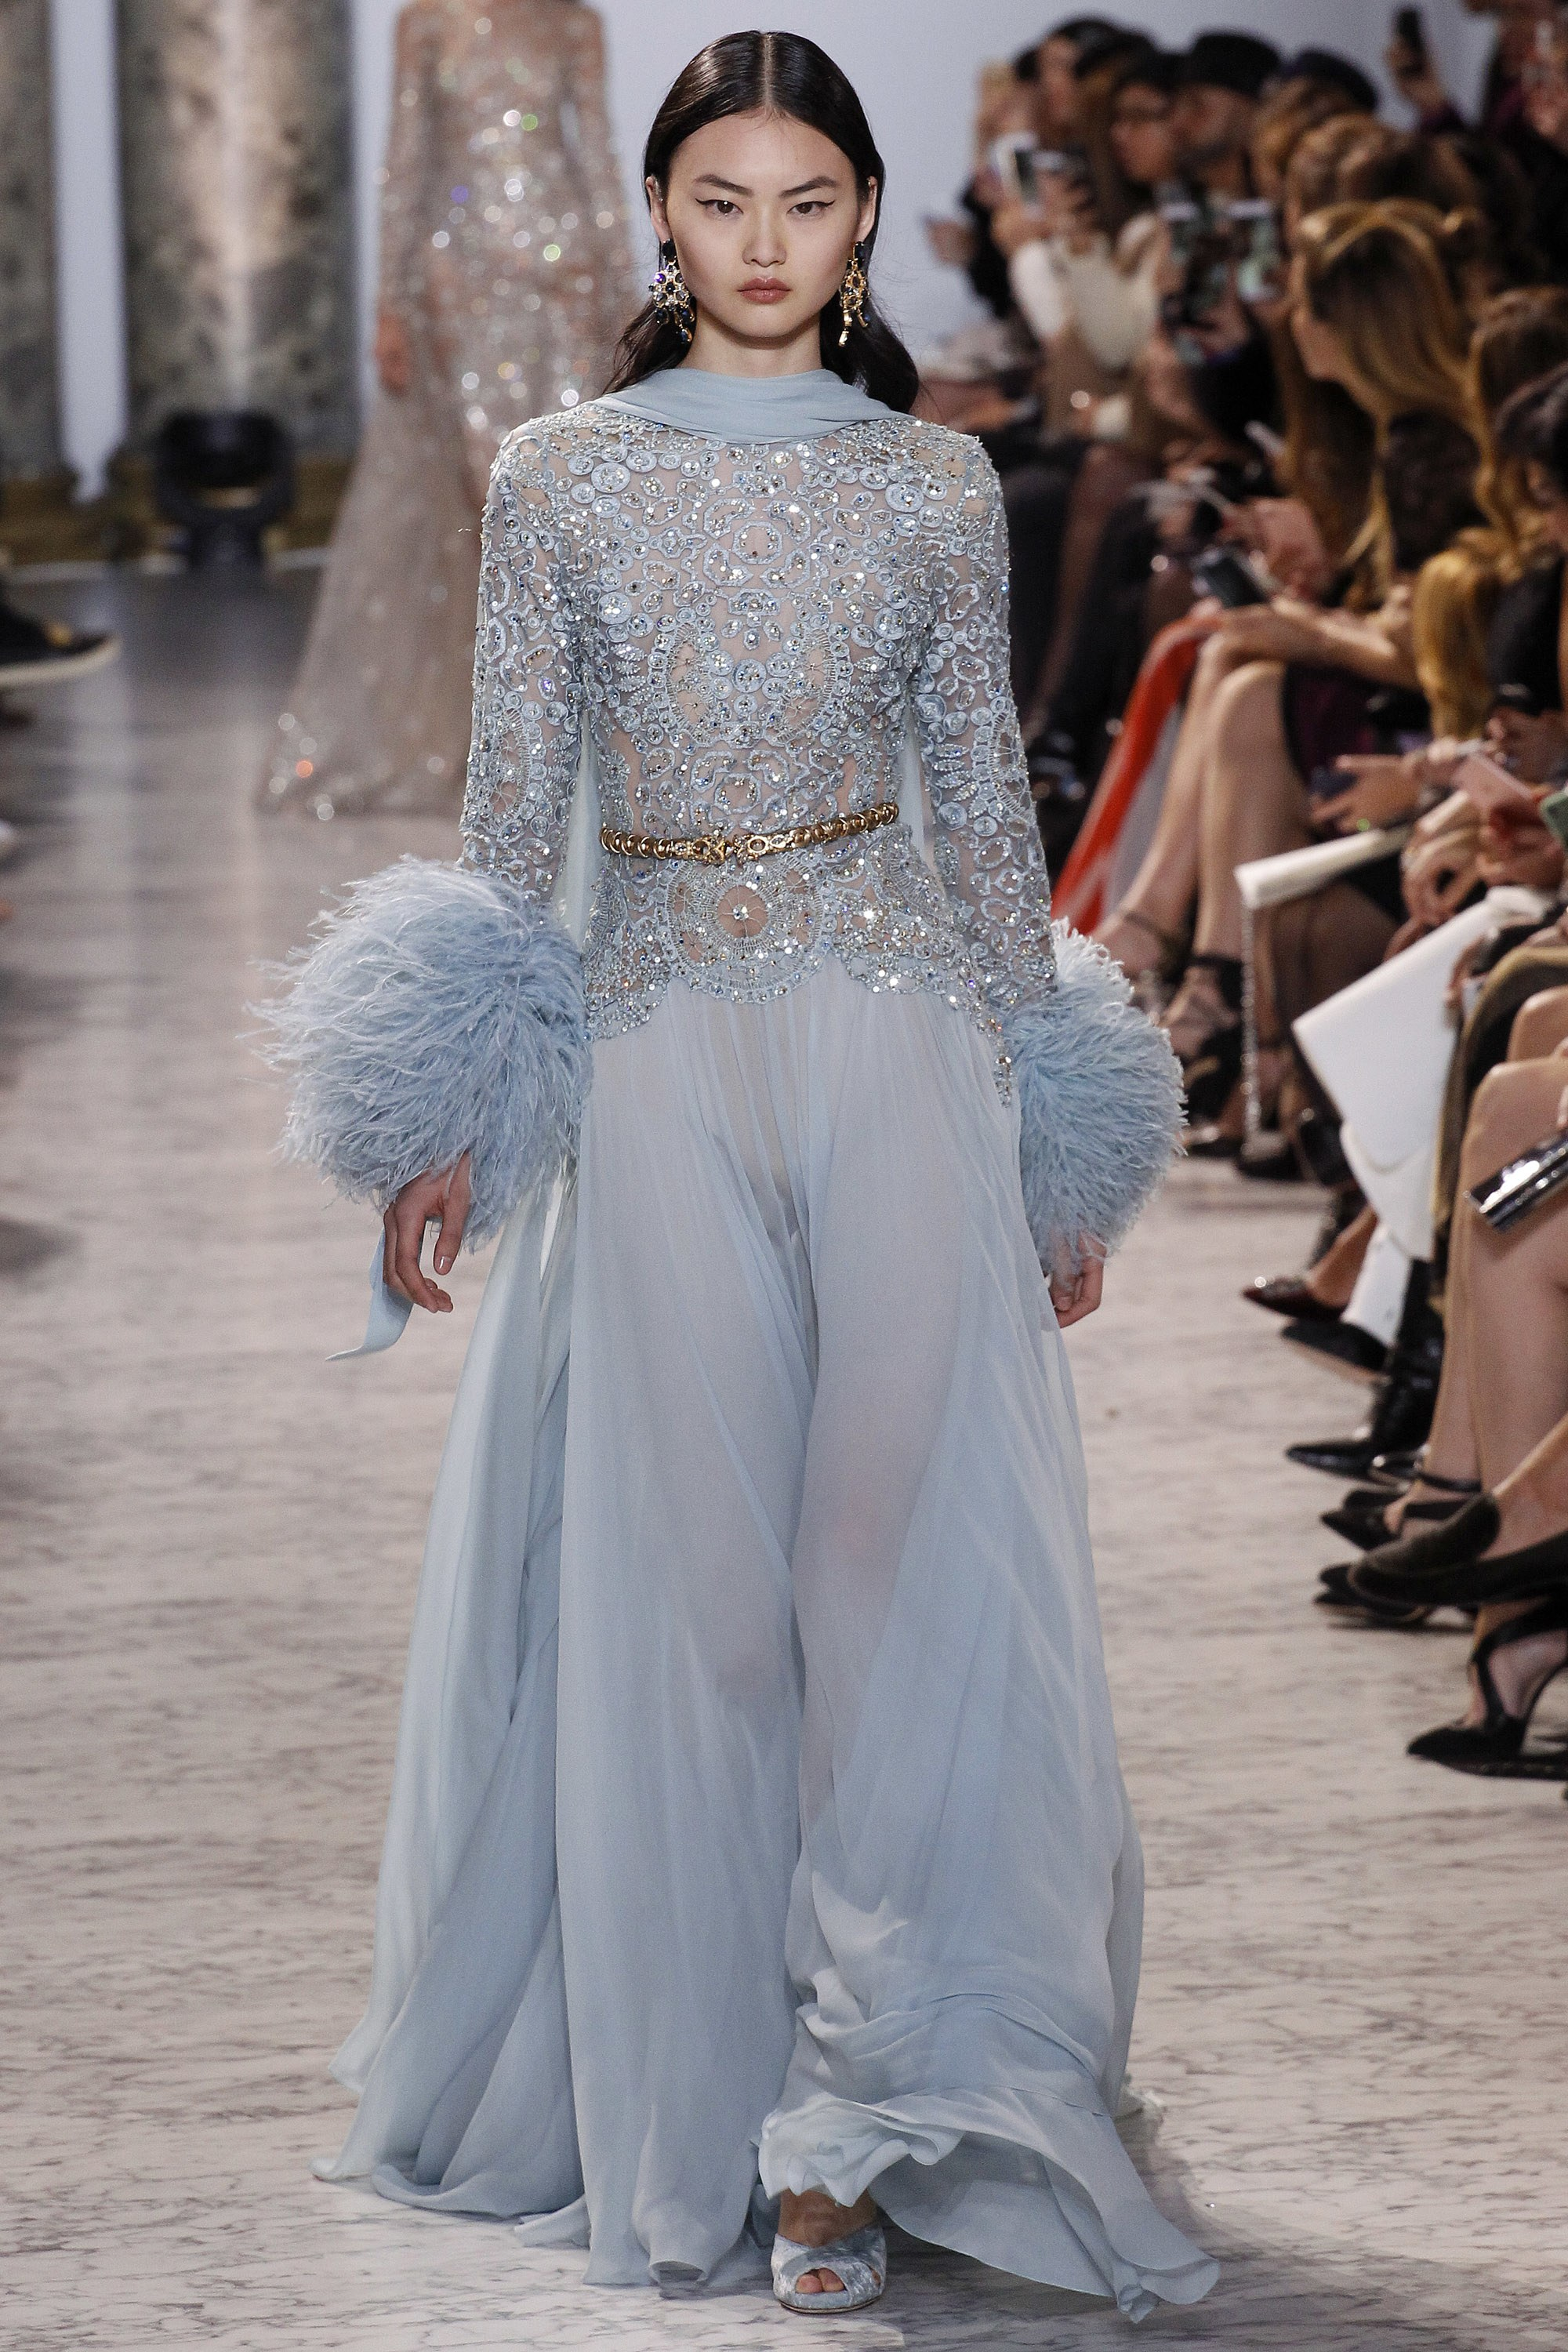 Asian Model wearing Elie Saab Collection